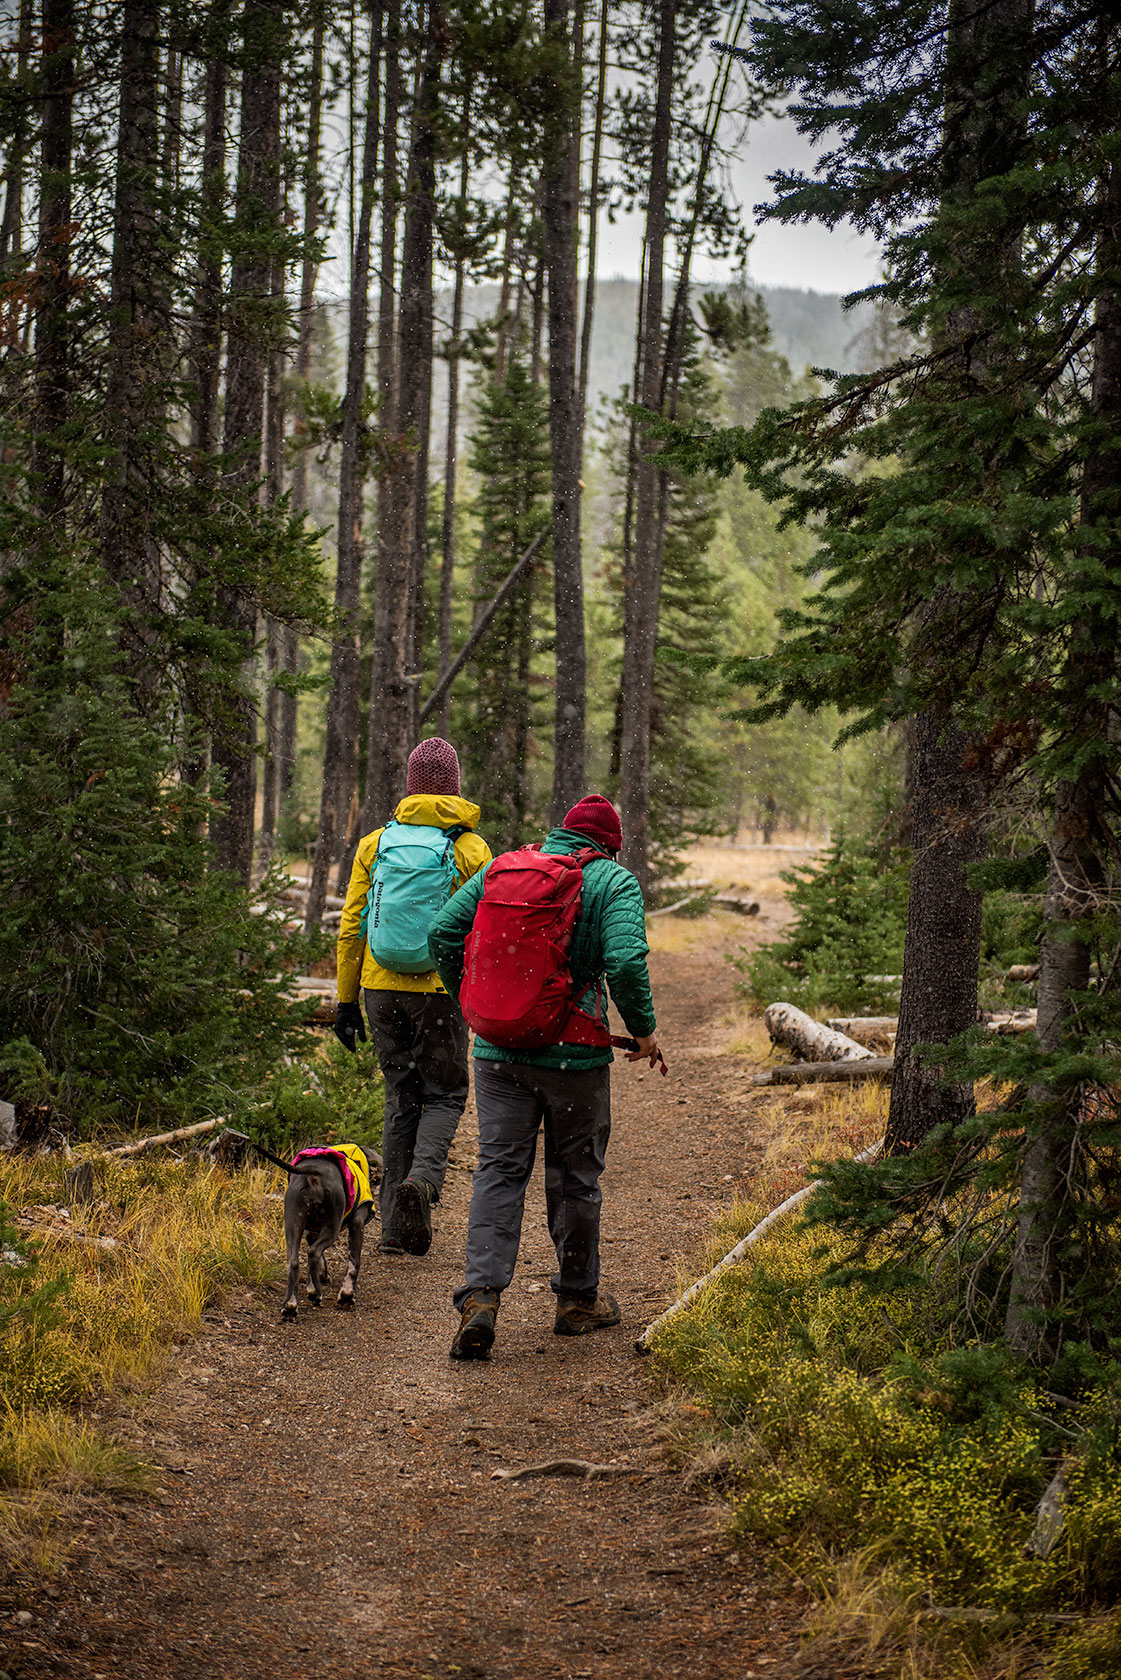 austin-trigg-patagonia-sawtooth-hiking-advenure-wilderness-forest-idaho-outside-lifestyle-day-fall-weather-mountains-snowing-long-trail.jpg